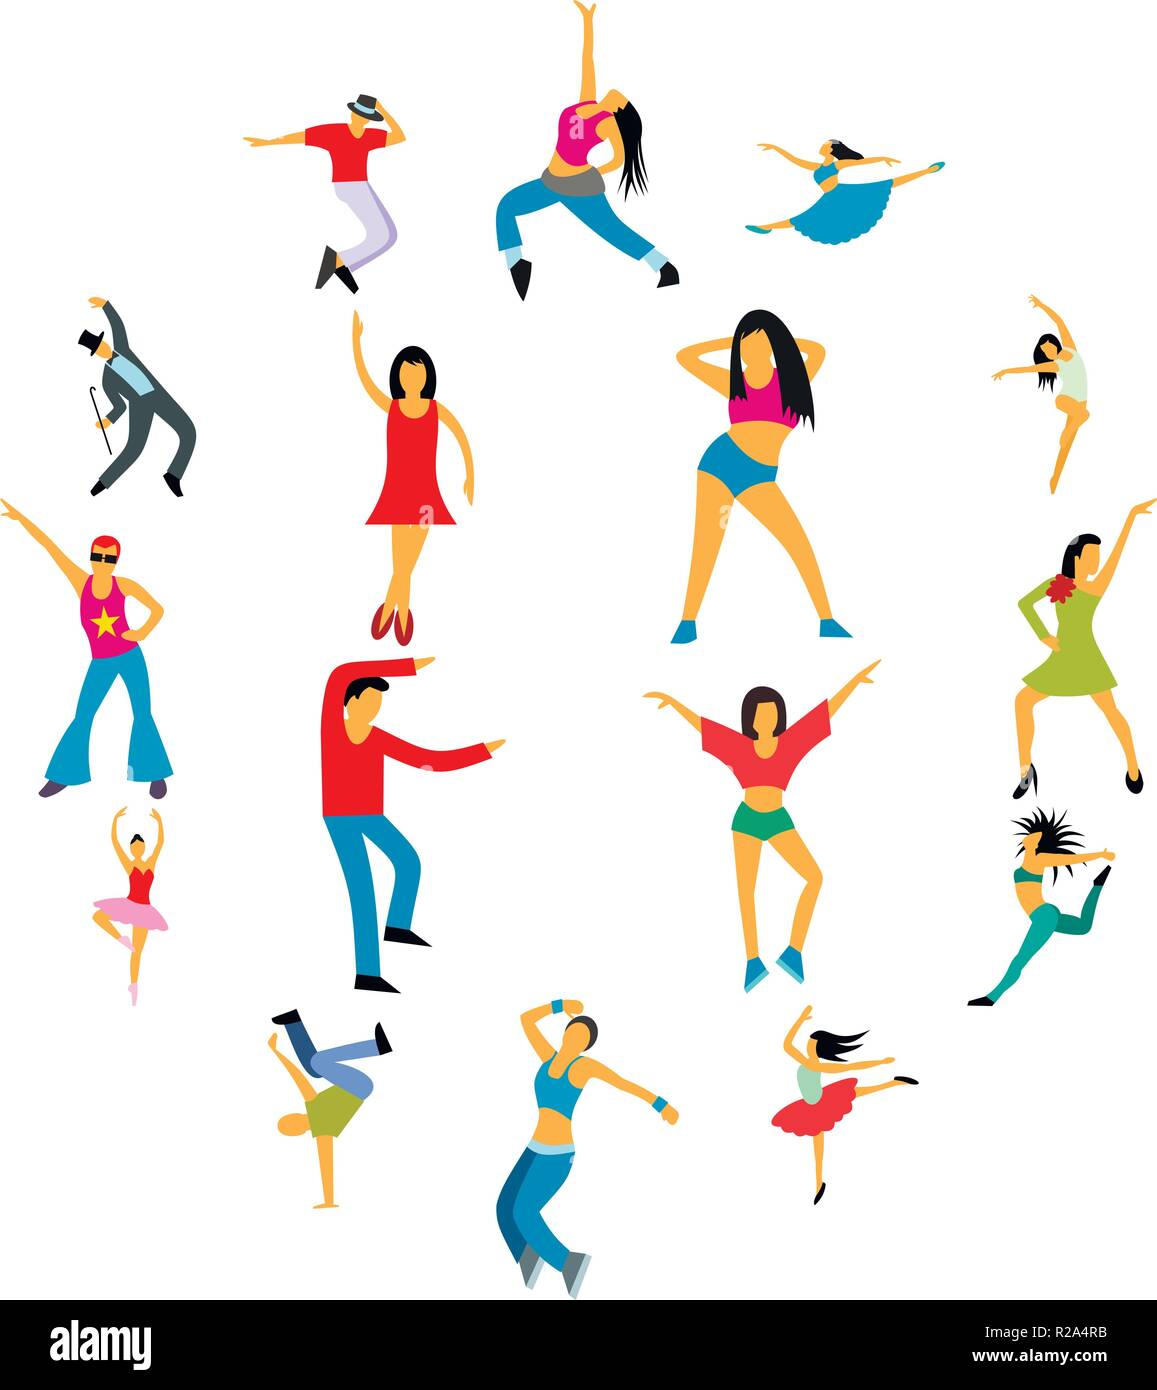 Dances flat icons set for web and mobile devices - Stock Vector